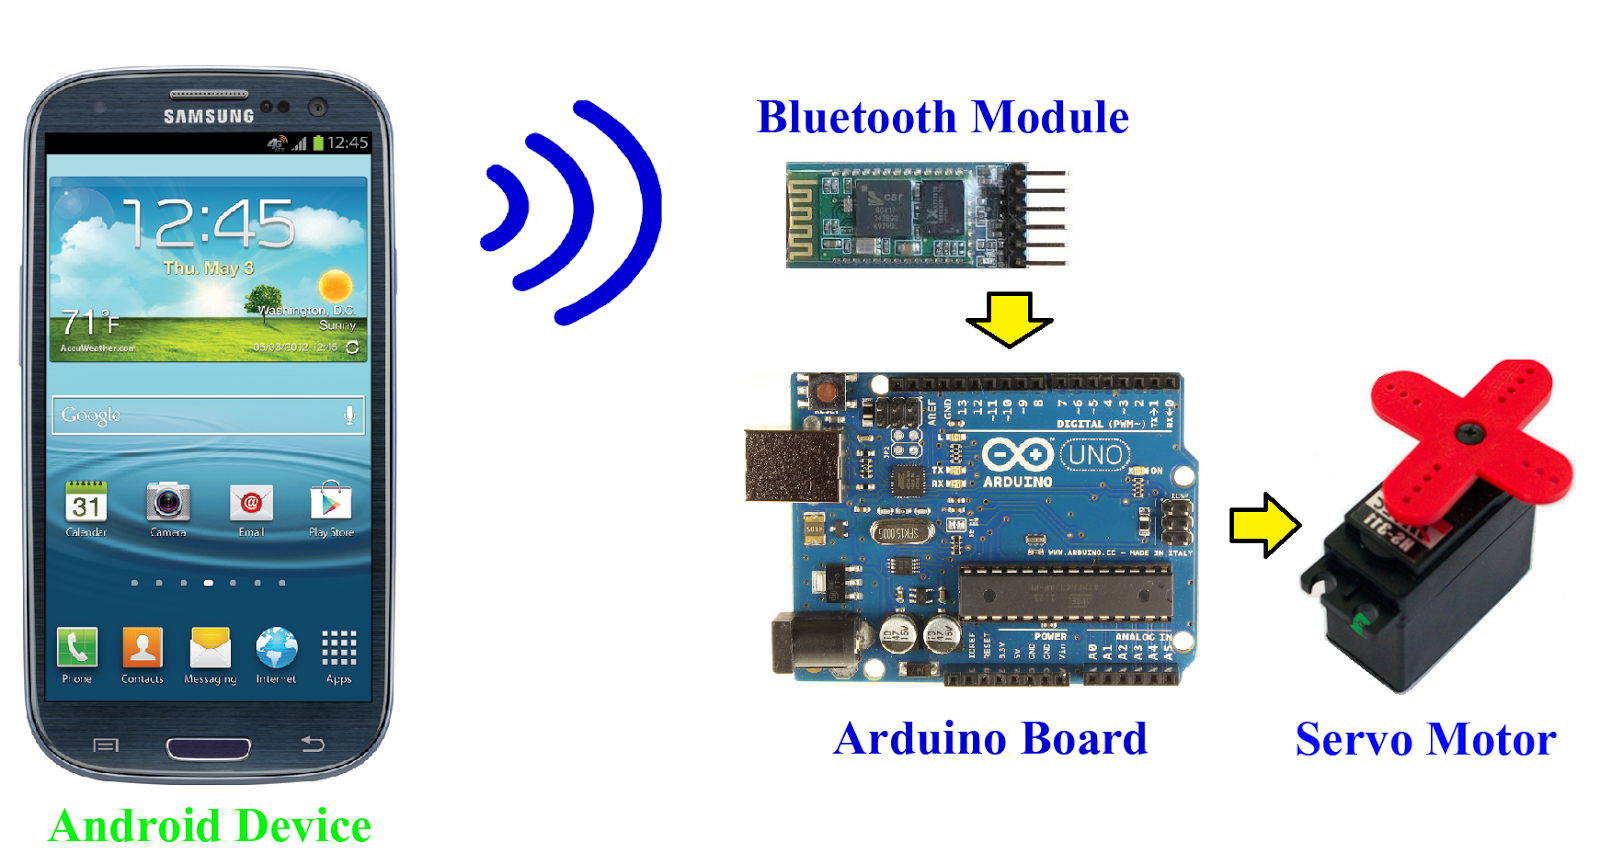 Servo Motor In Arduino Haiylu T Kibret Medium Pic Control Circuit Collection Allows An Board To Rcradio Motors Have Combined Apparatus And A Tunnel That Can Be Precisely